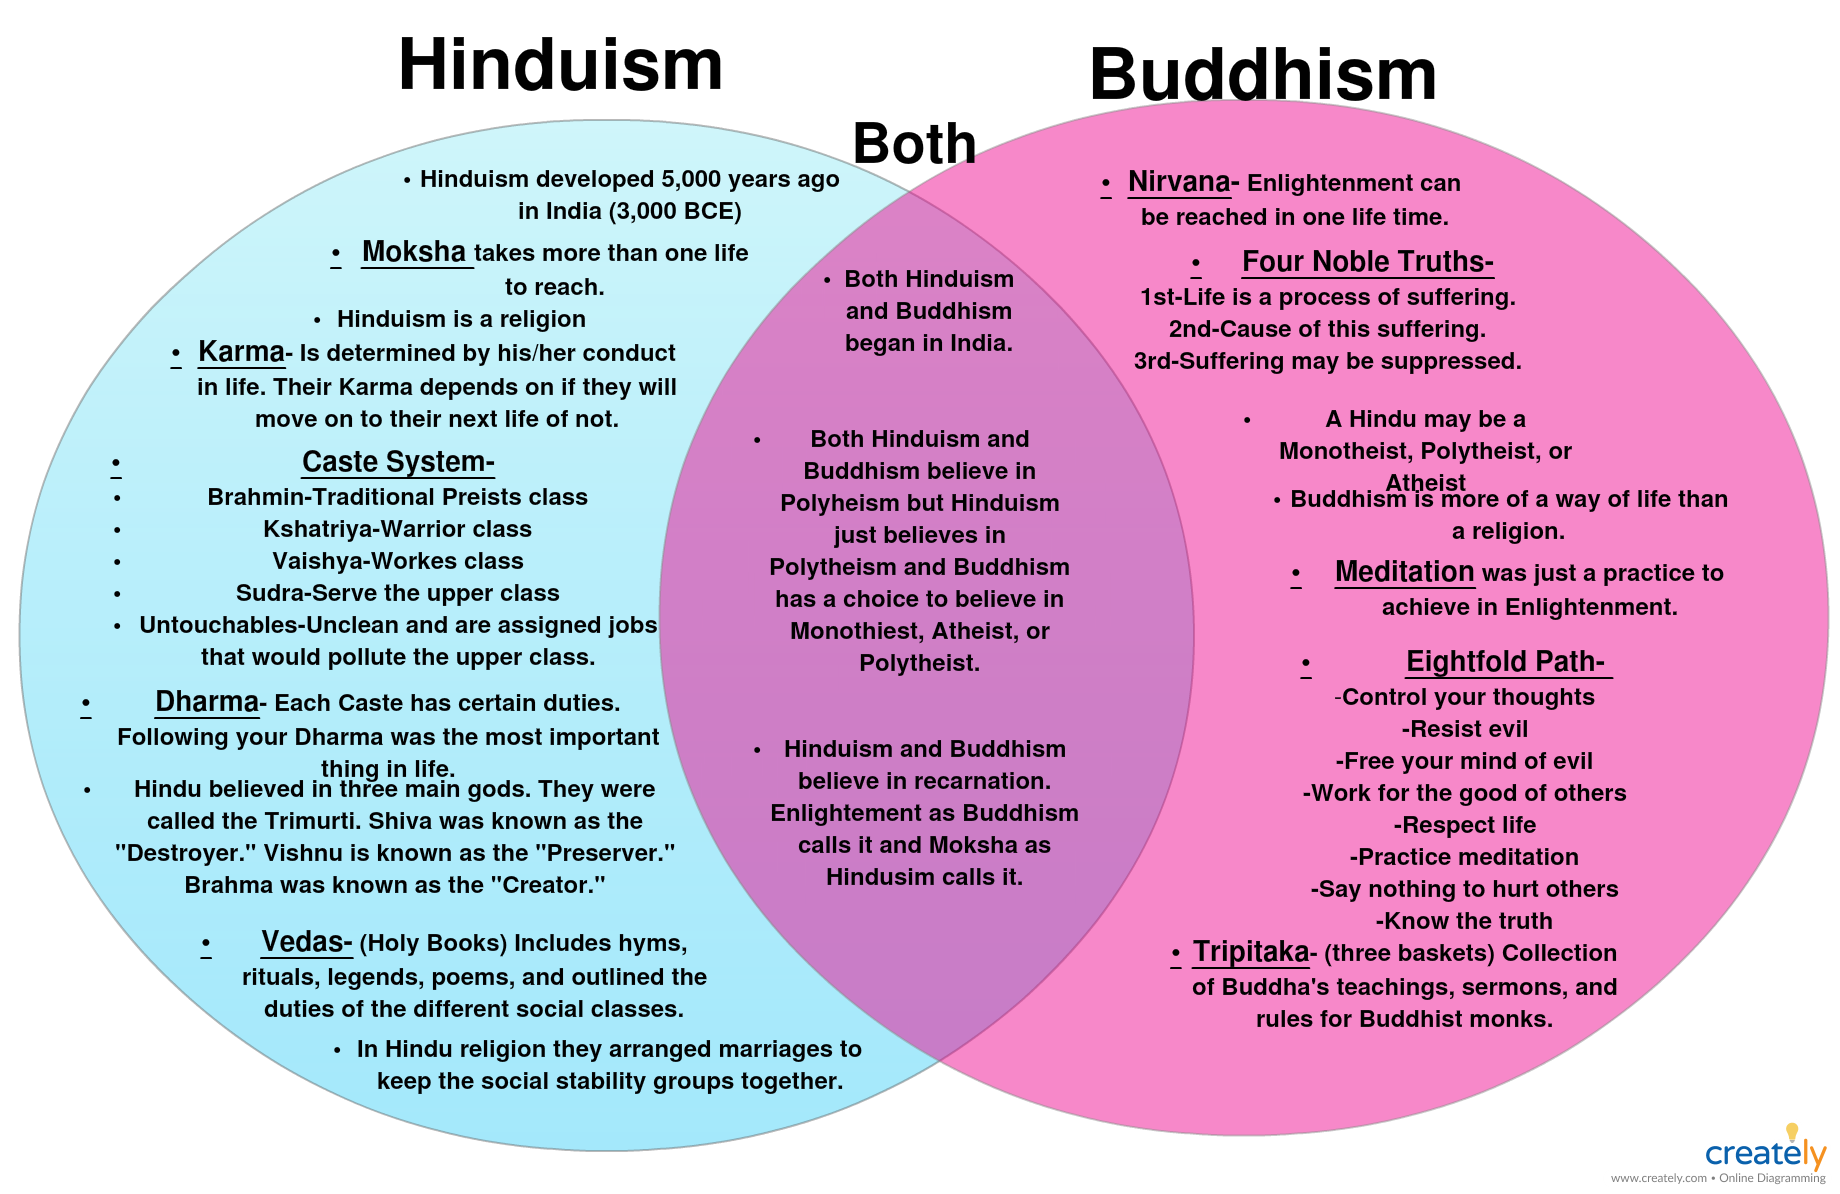 medium resolution of venn diagrams shows the similarities between hinduism and buddhism you can use this example for a class project or and educational purposes by simply